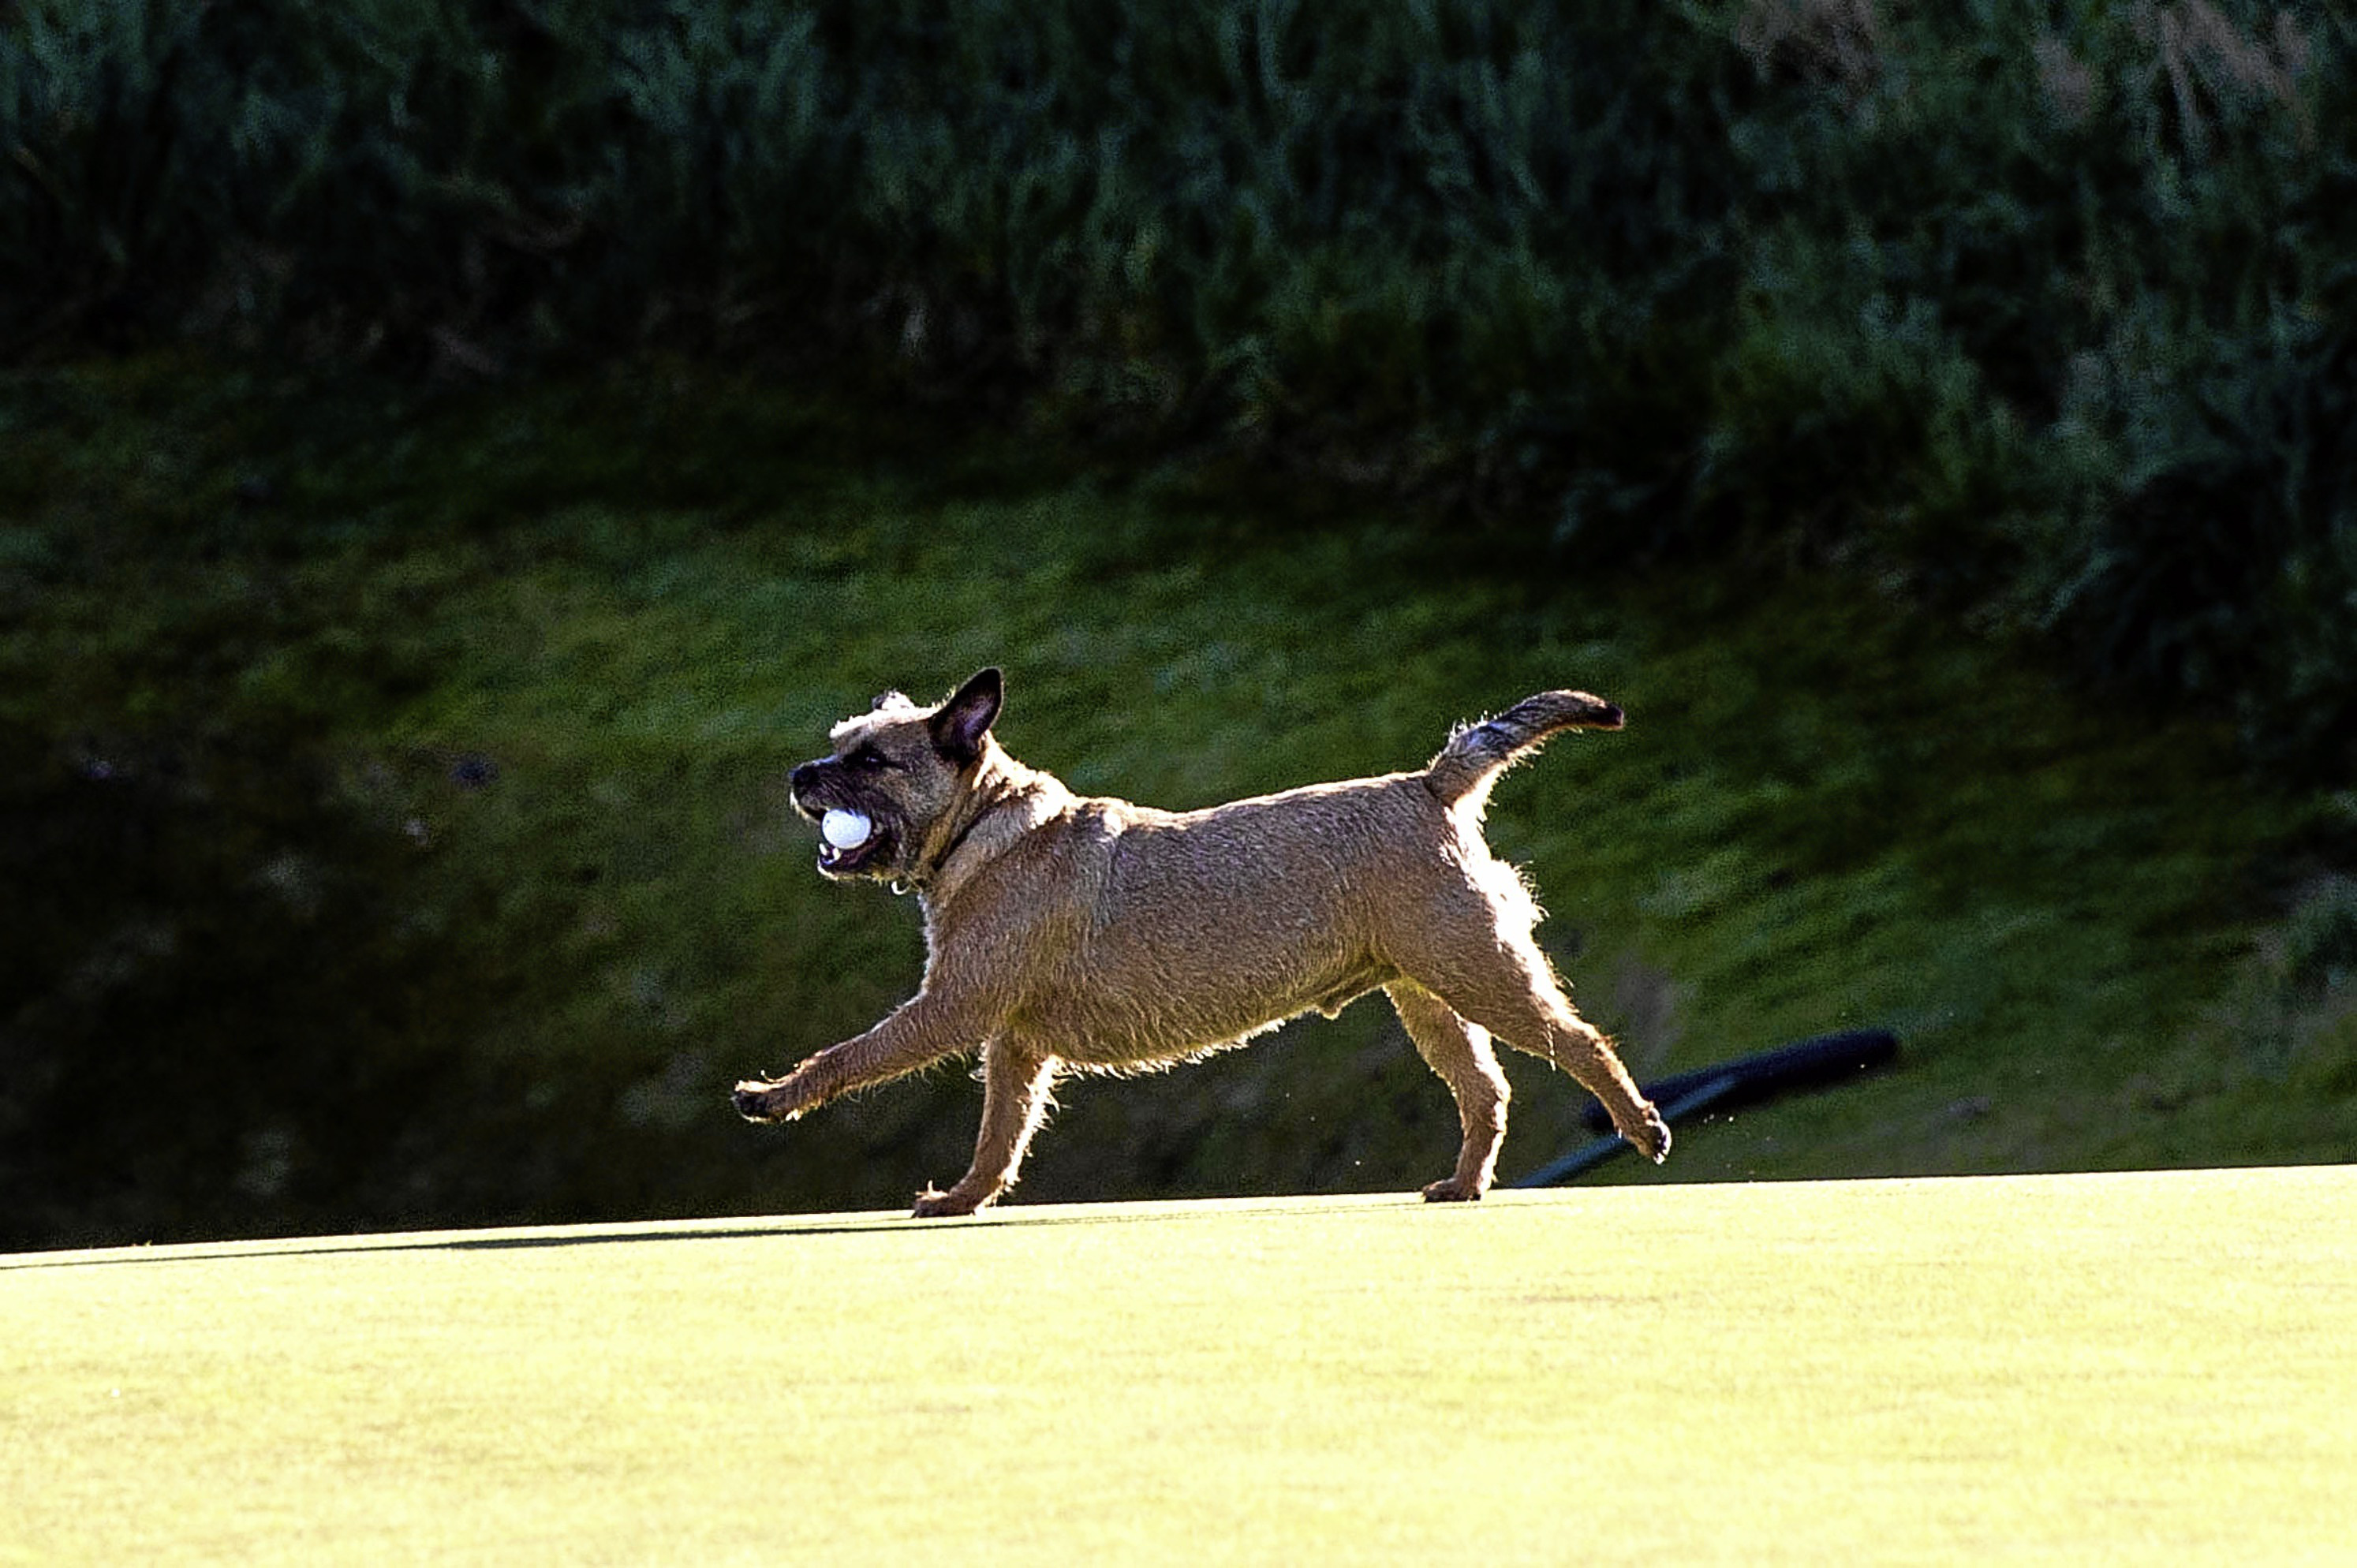 Golfer's won't be able to take their pets on the course under new rules.